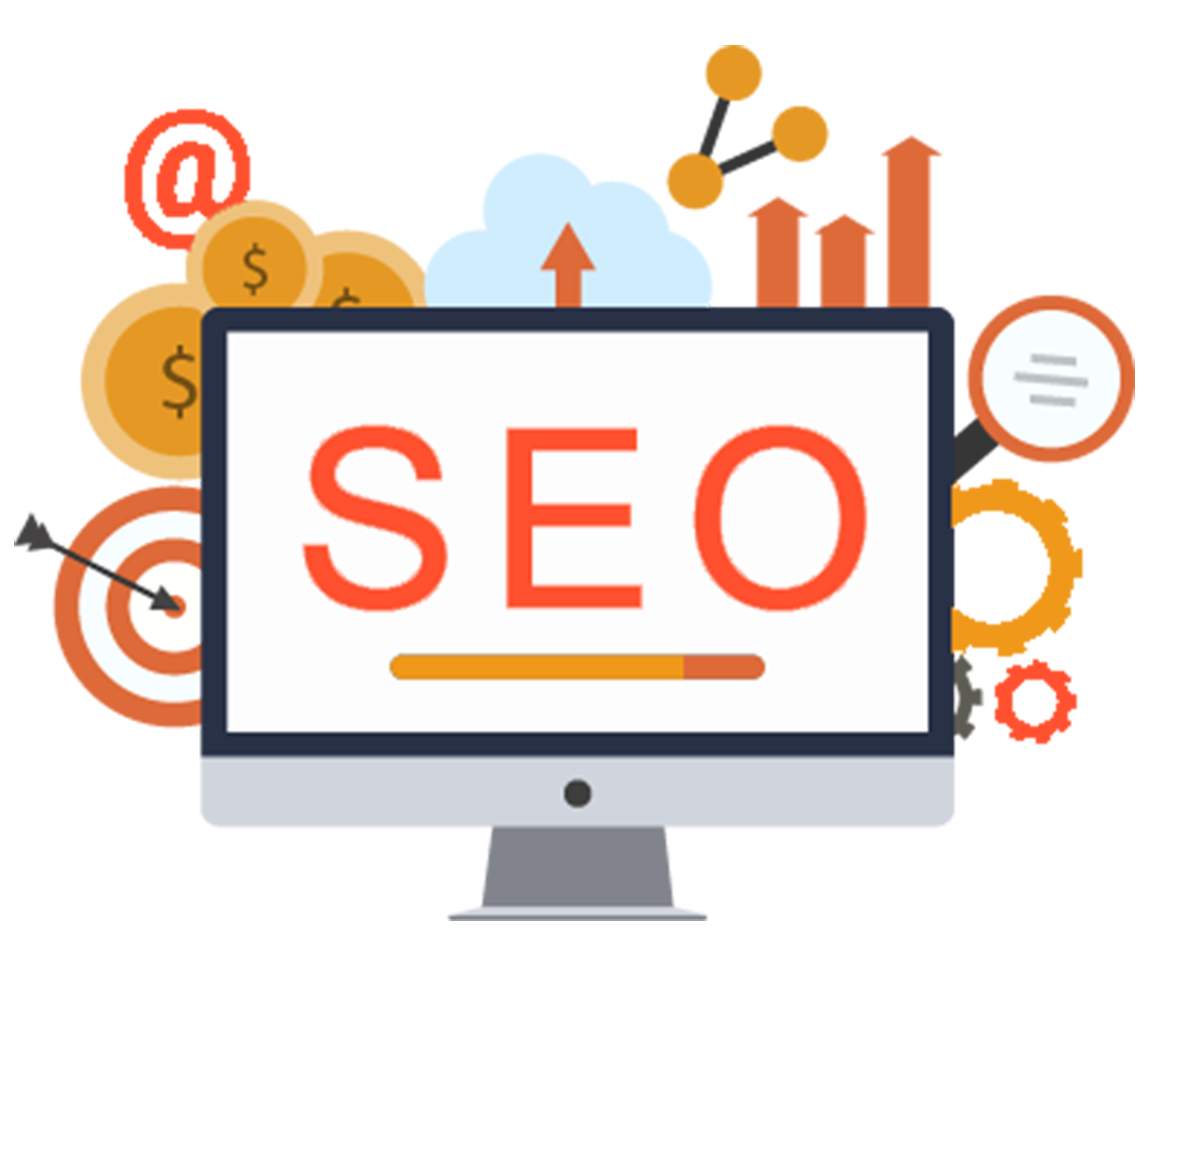 seo digital marketing services in pune india